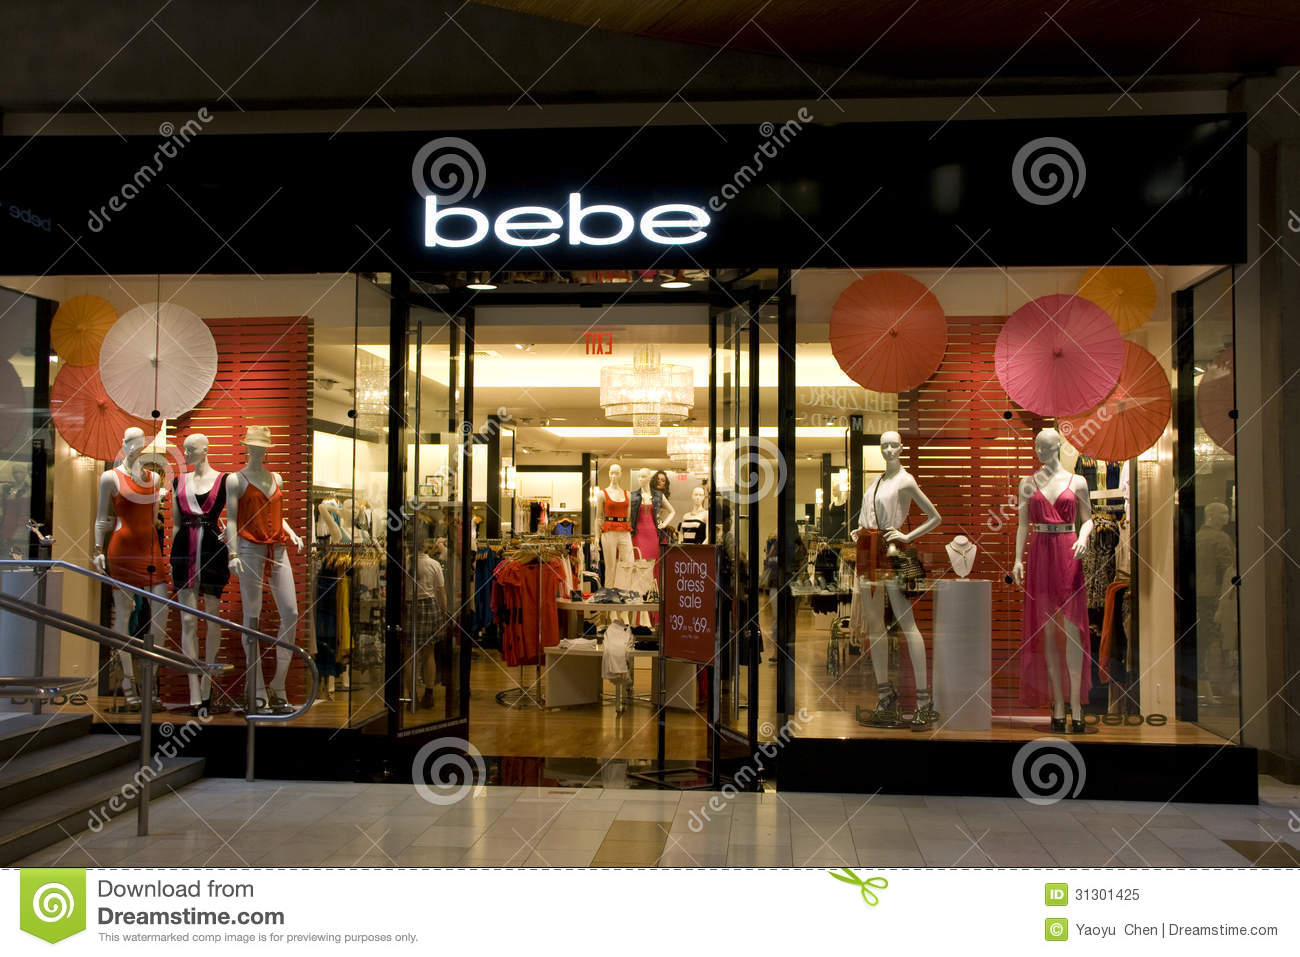 Clothing stores near times square